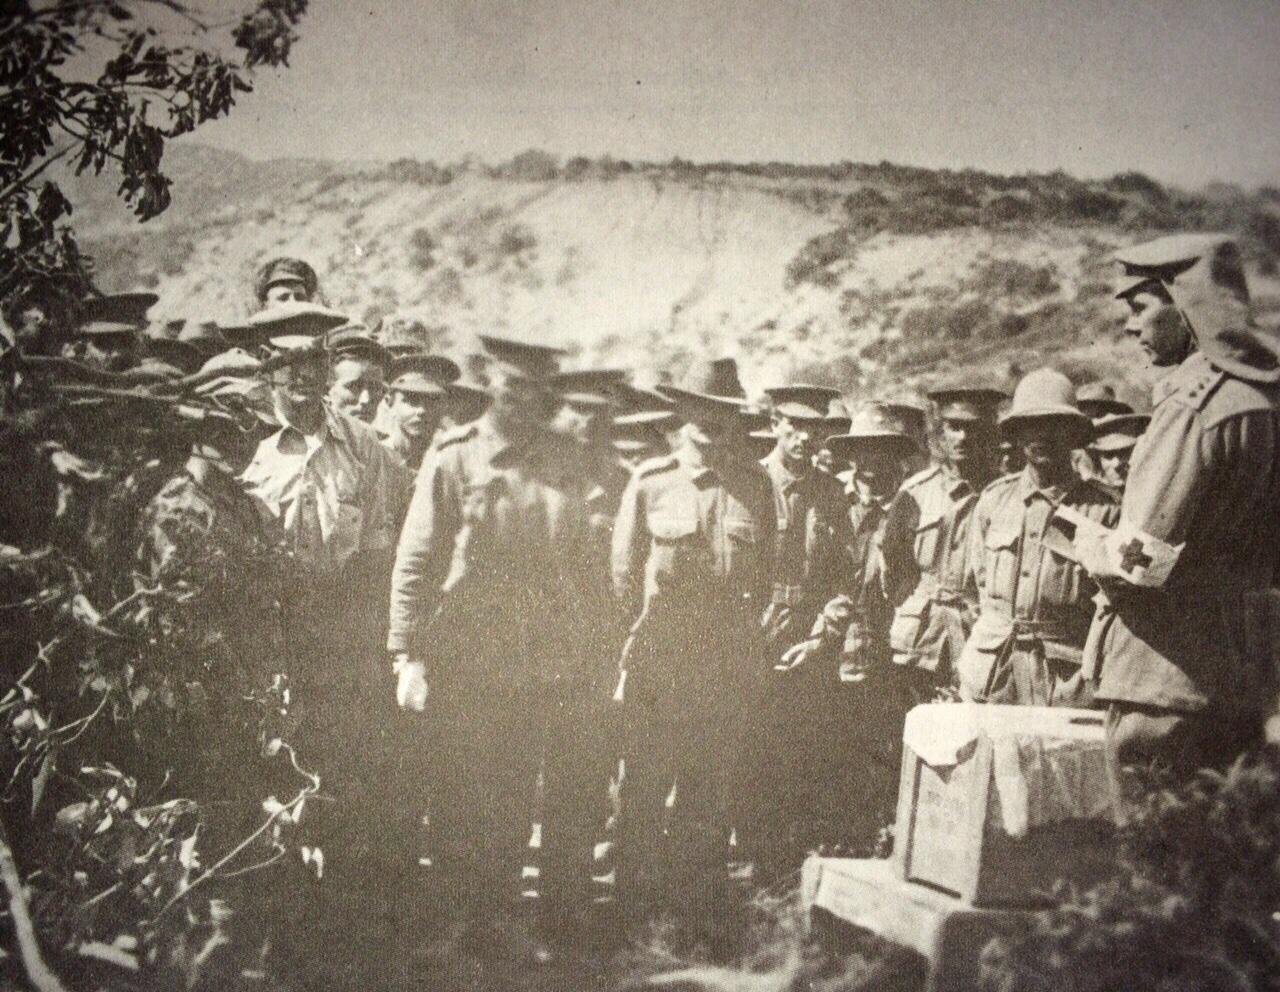 Chaplain Colonel Merrington ministering to First AIF troops on the Gallipoli Peninsula in 1915.